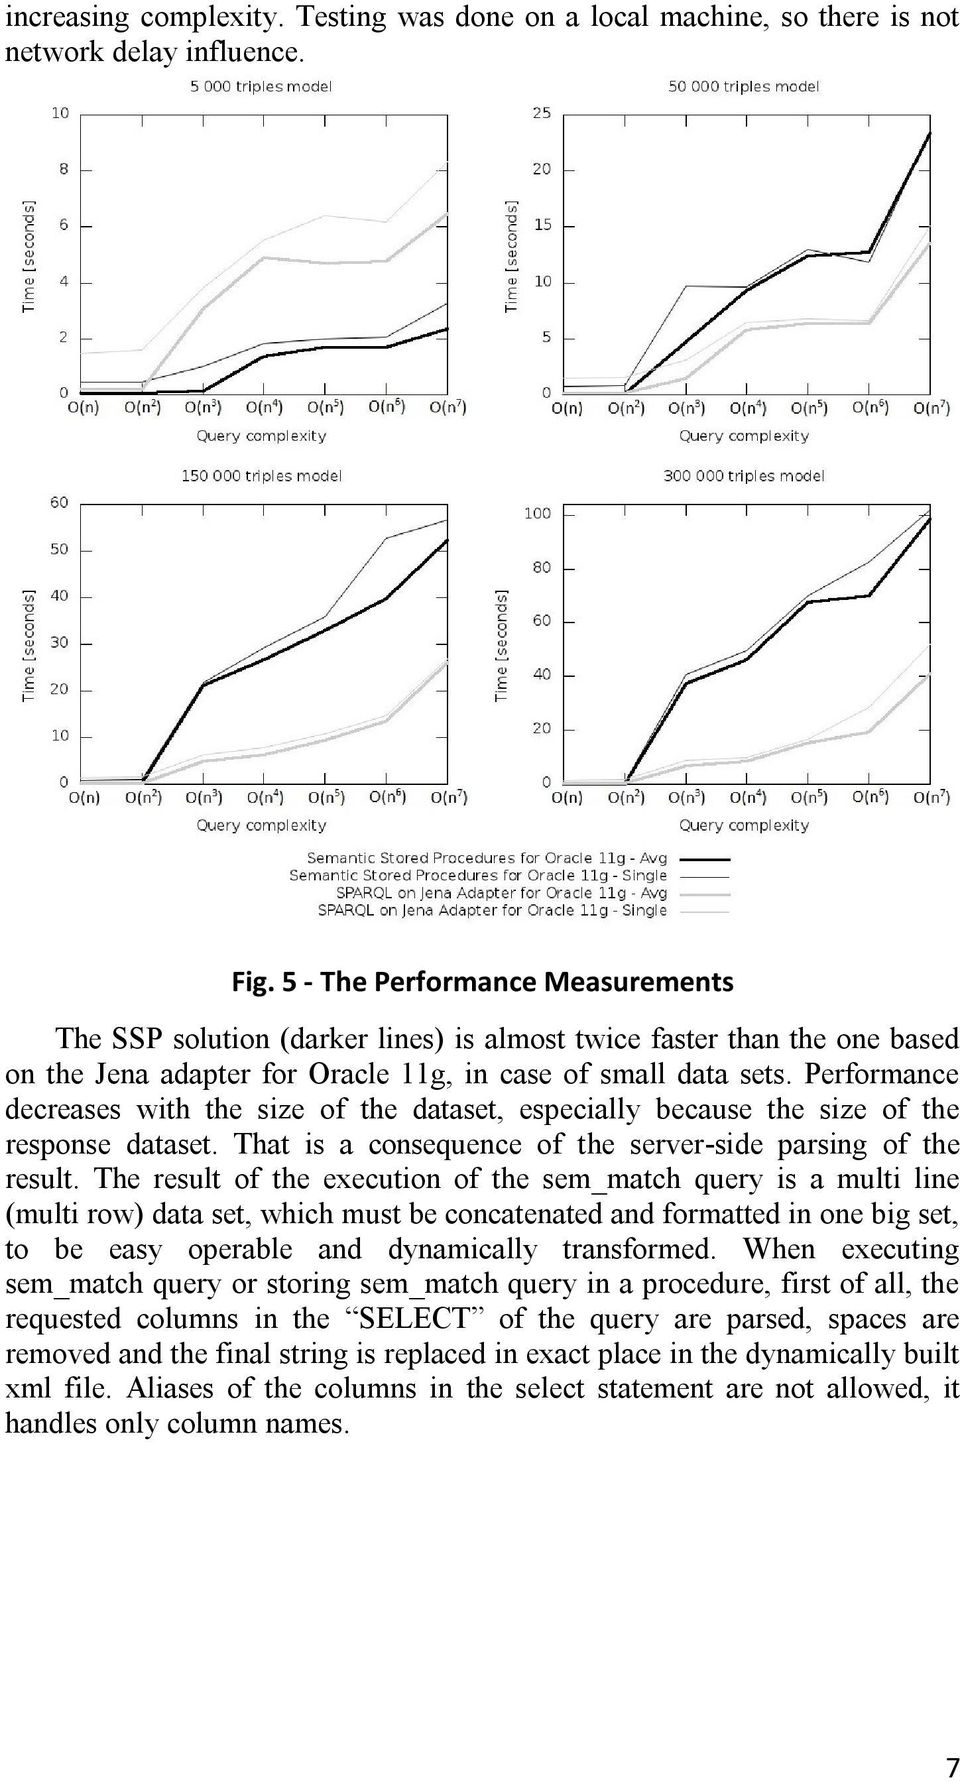 Performance decreases with the size of the dataset, especially because the size of the response dataset. That is a consequence of the server-side parsing of the result.